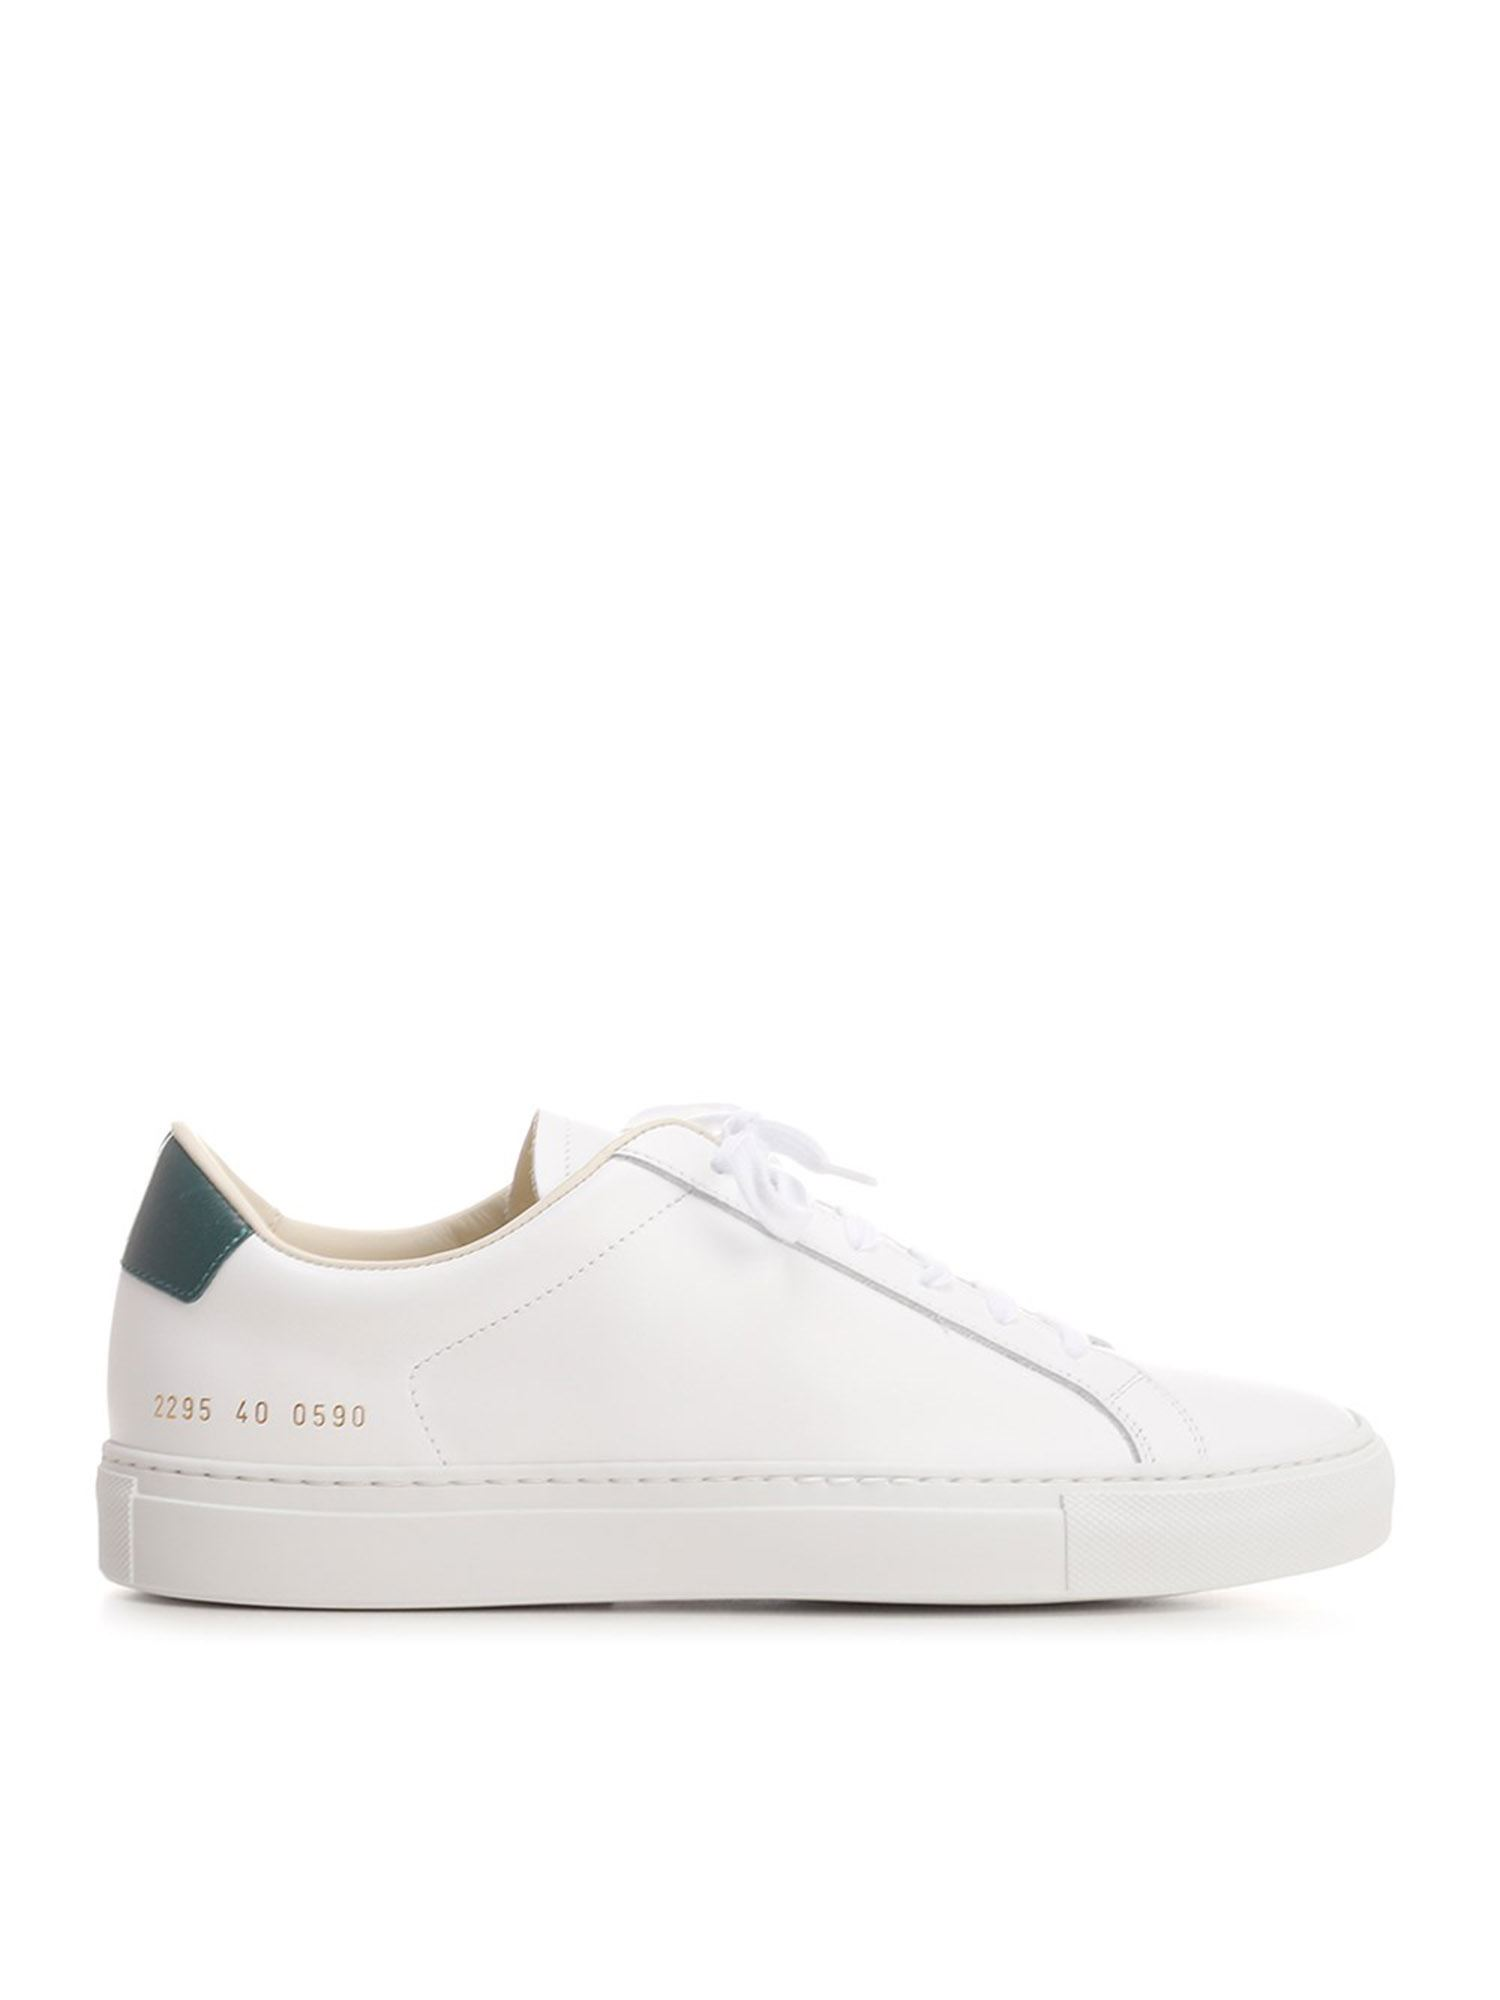 Common Projects RETRO SNEAKERS IN WHITE AND GREEN